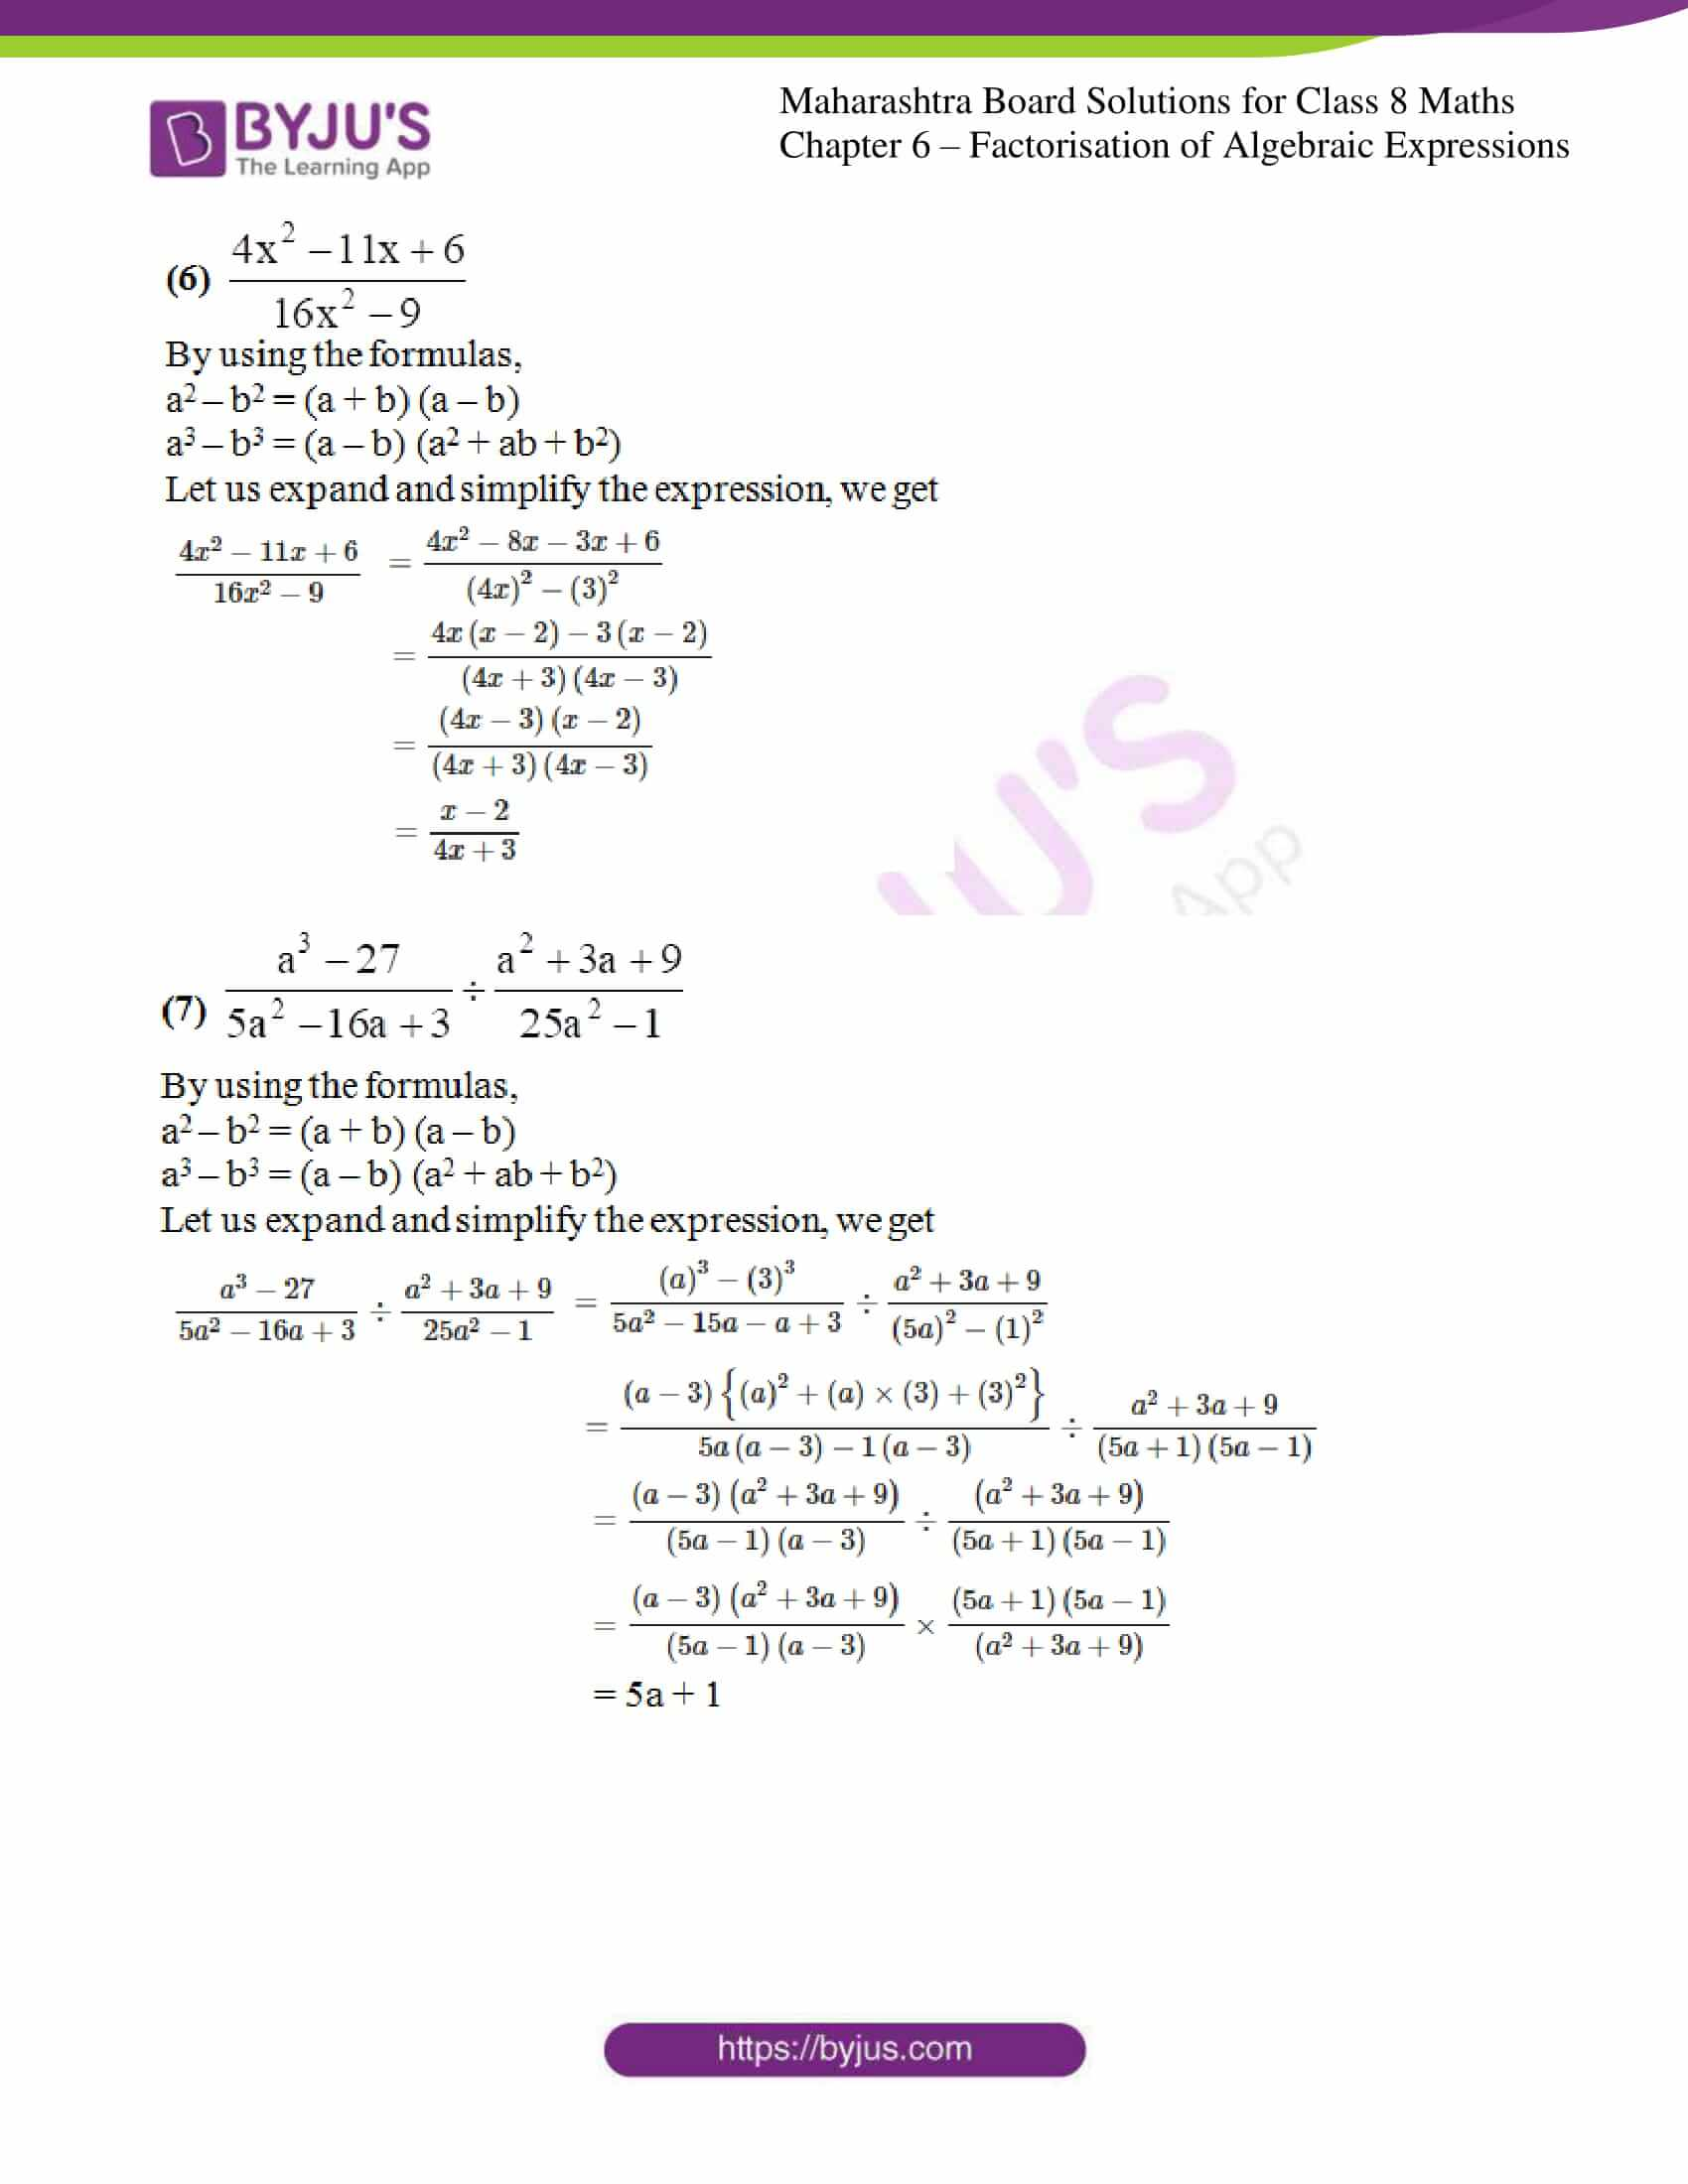 msbshse sol for class 8 maths chapter 6 15